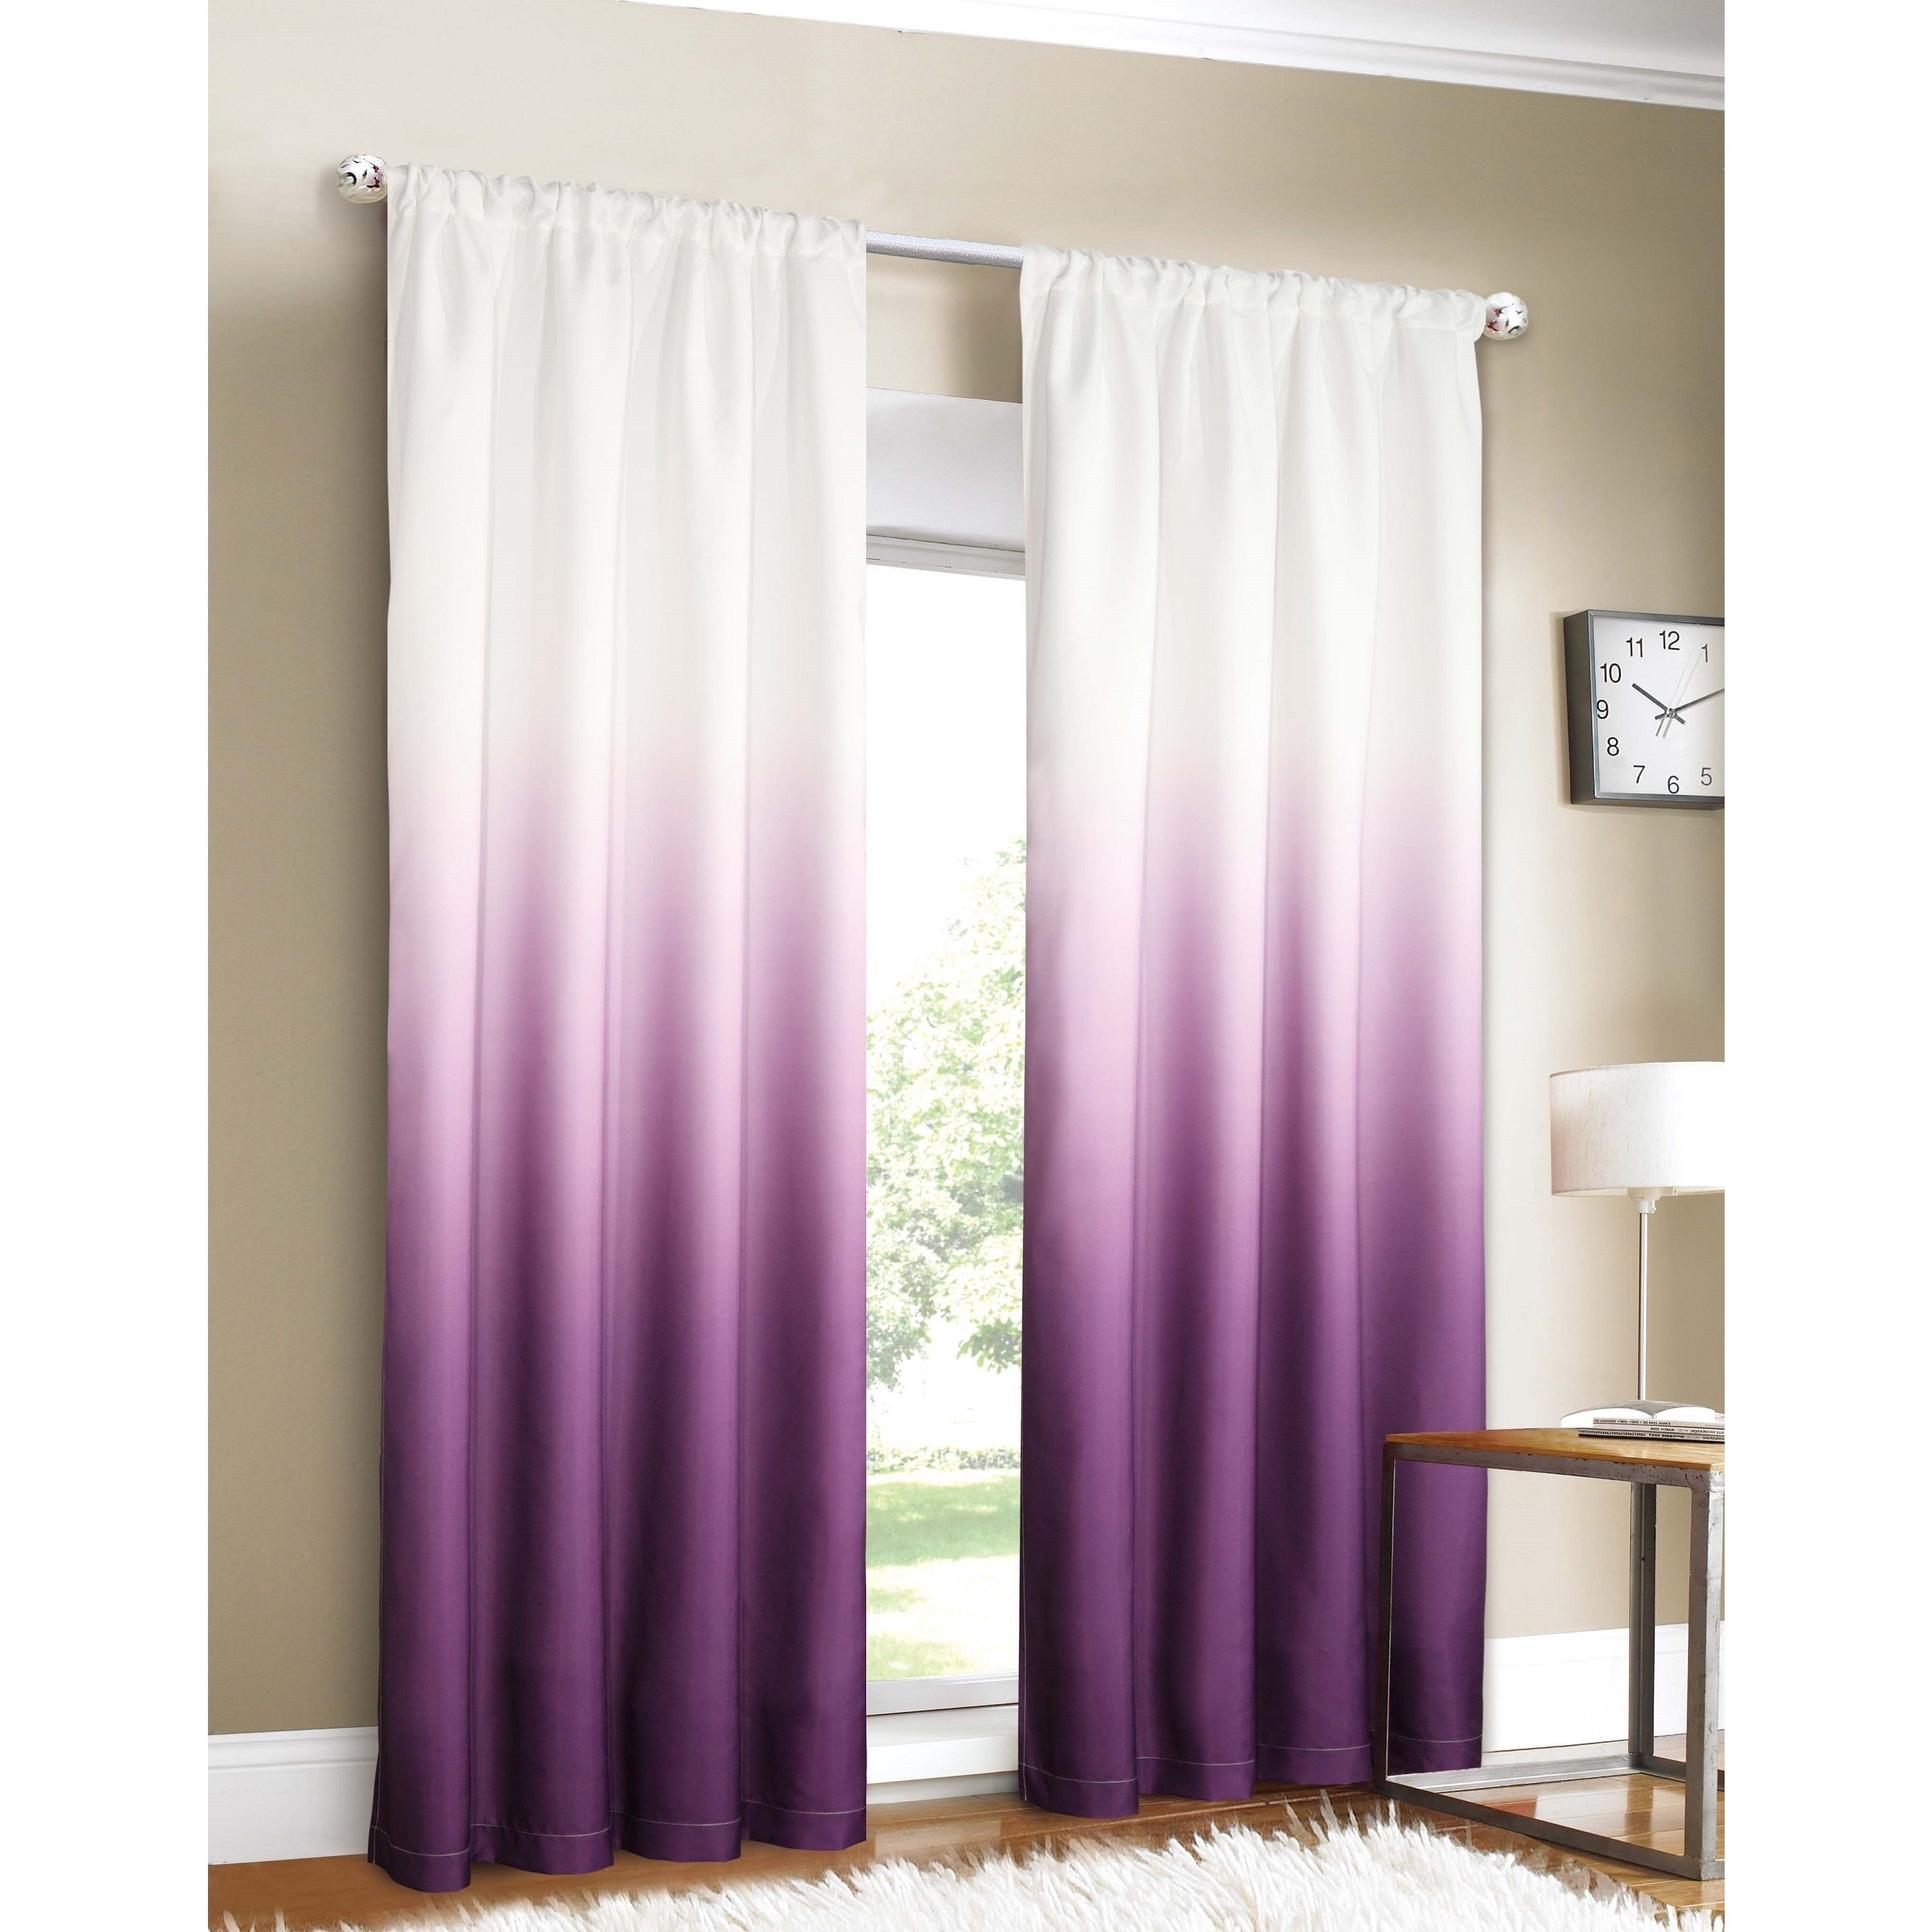 softline tab garden curtain ombre shipping on panels panel curtains over overstock linen and orders tie product cotton home free